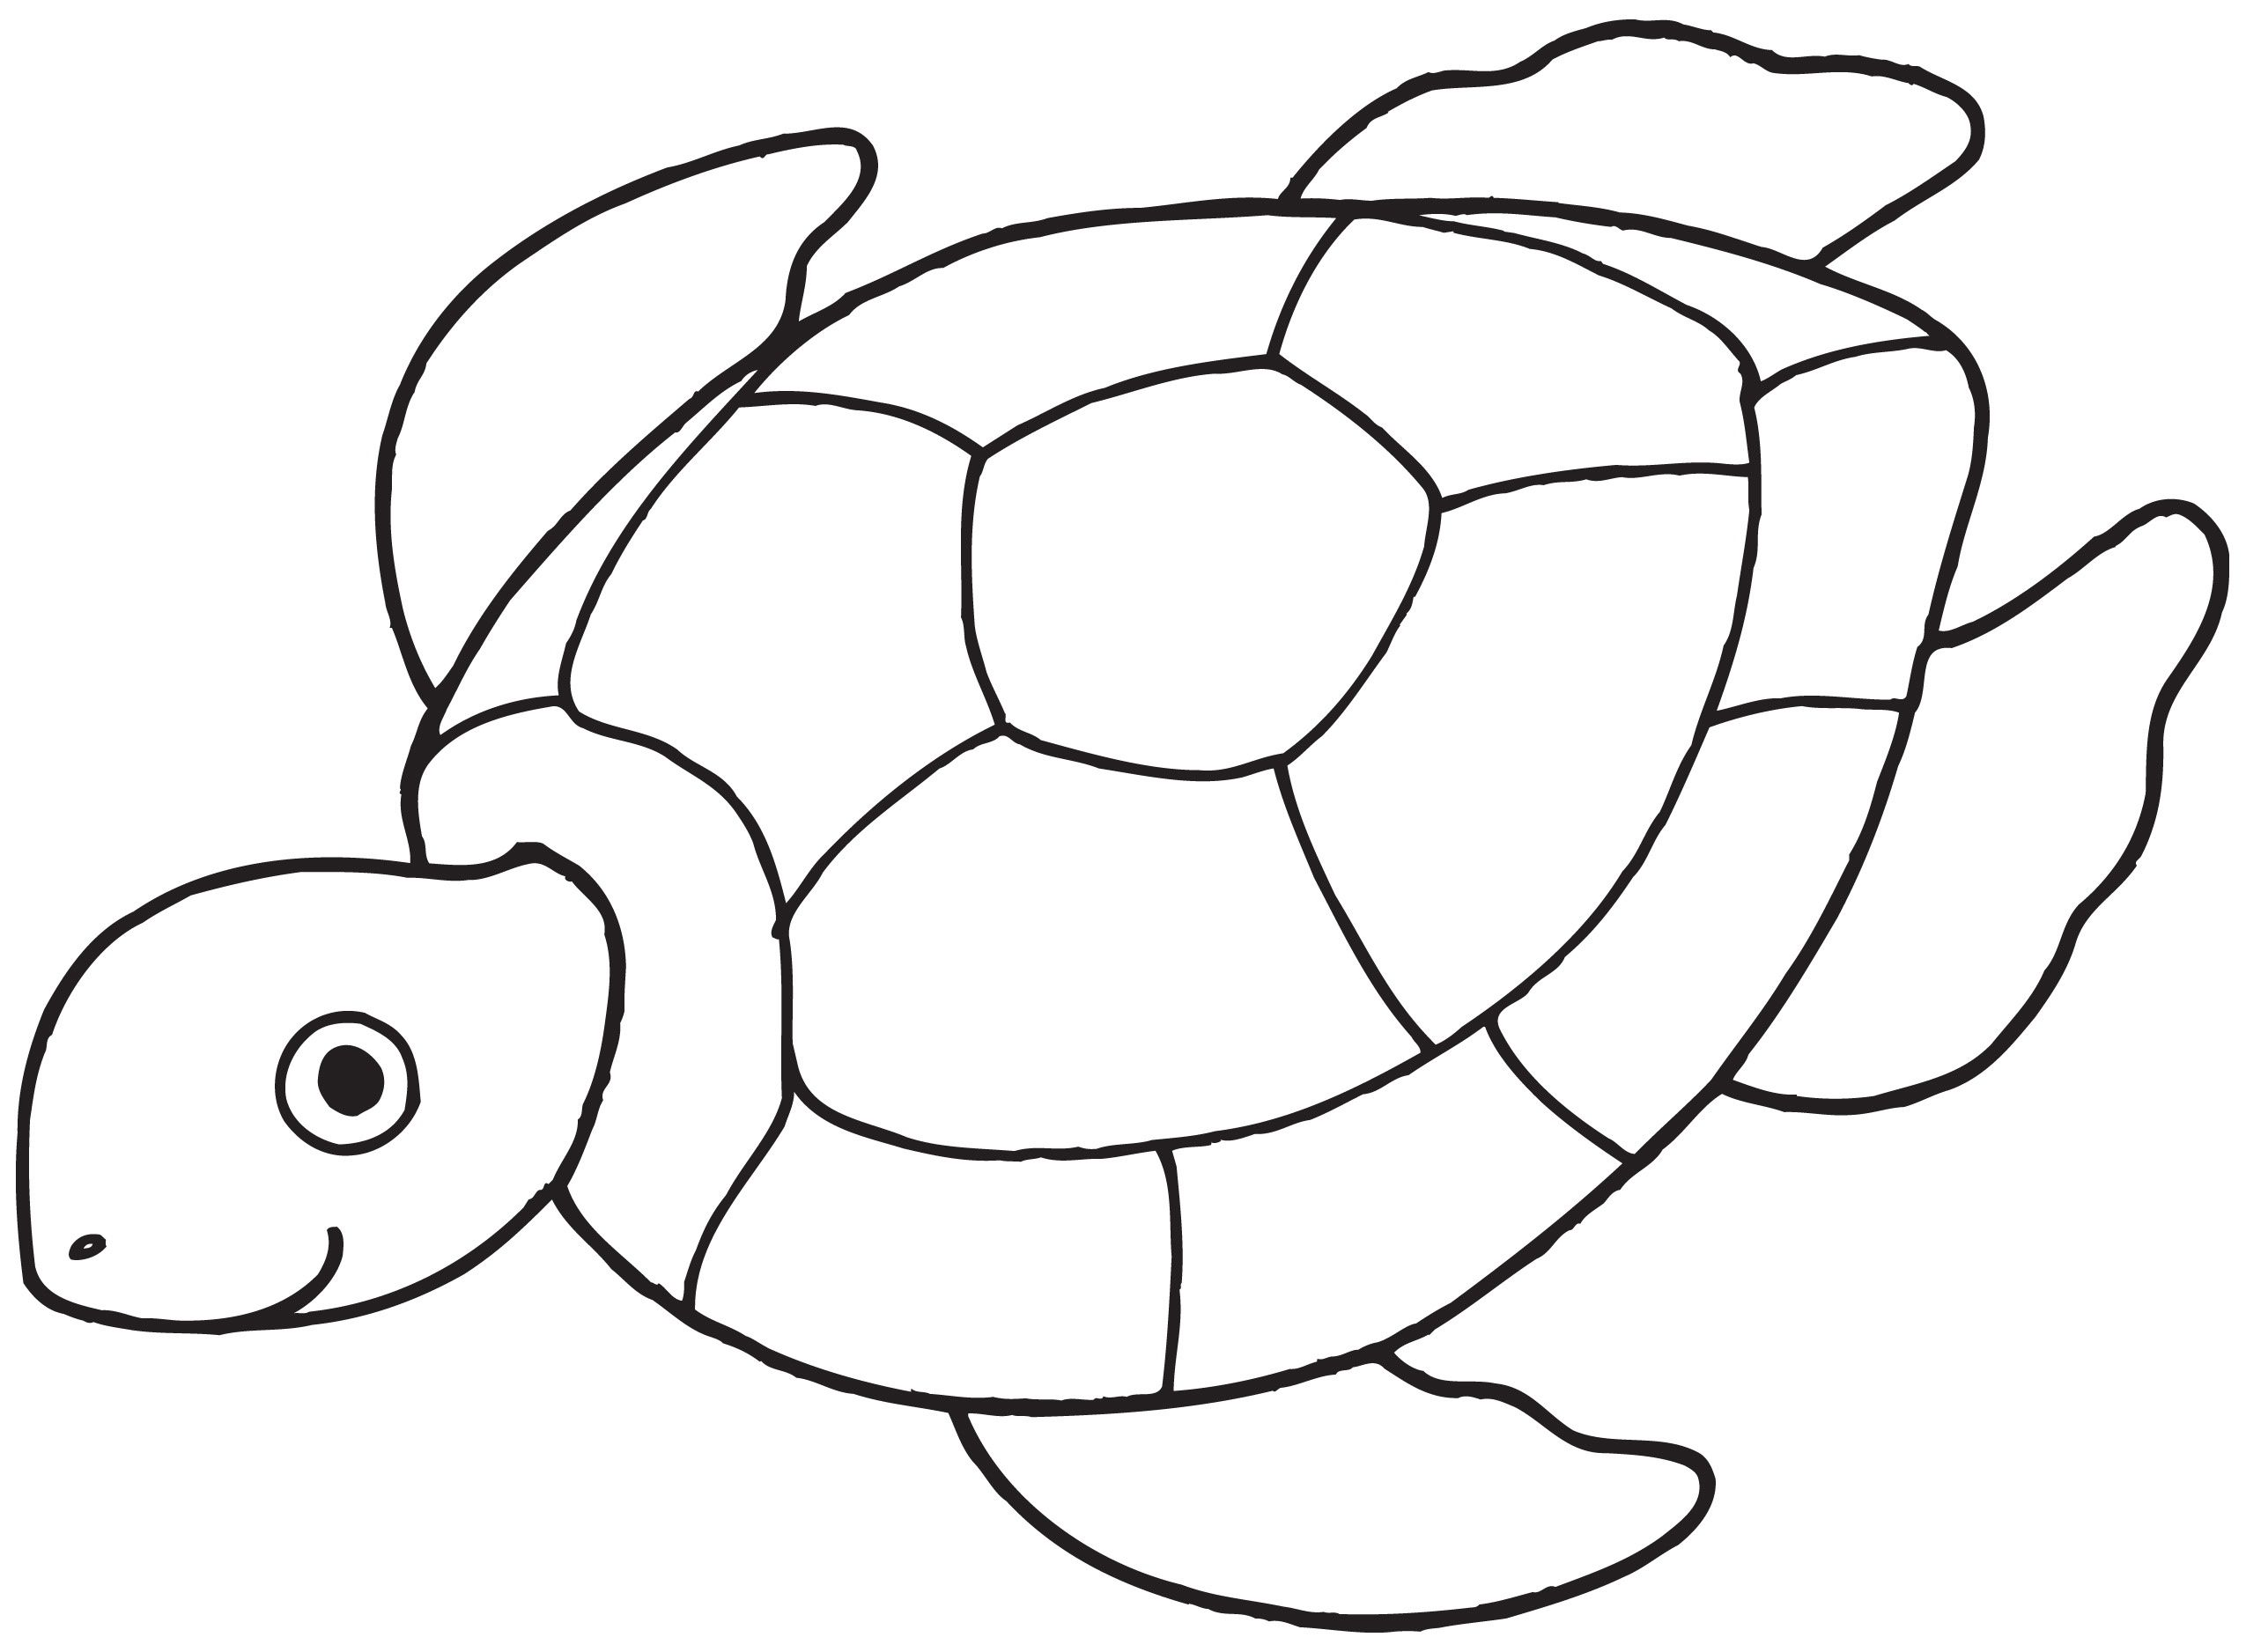 easy printable turtle coloring pages